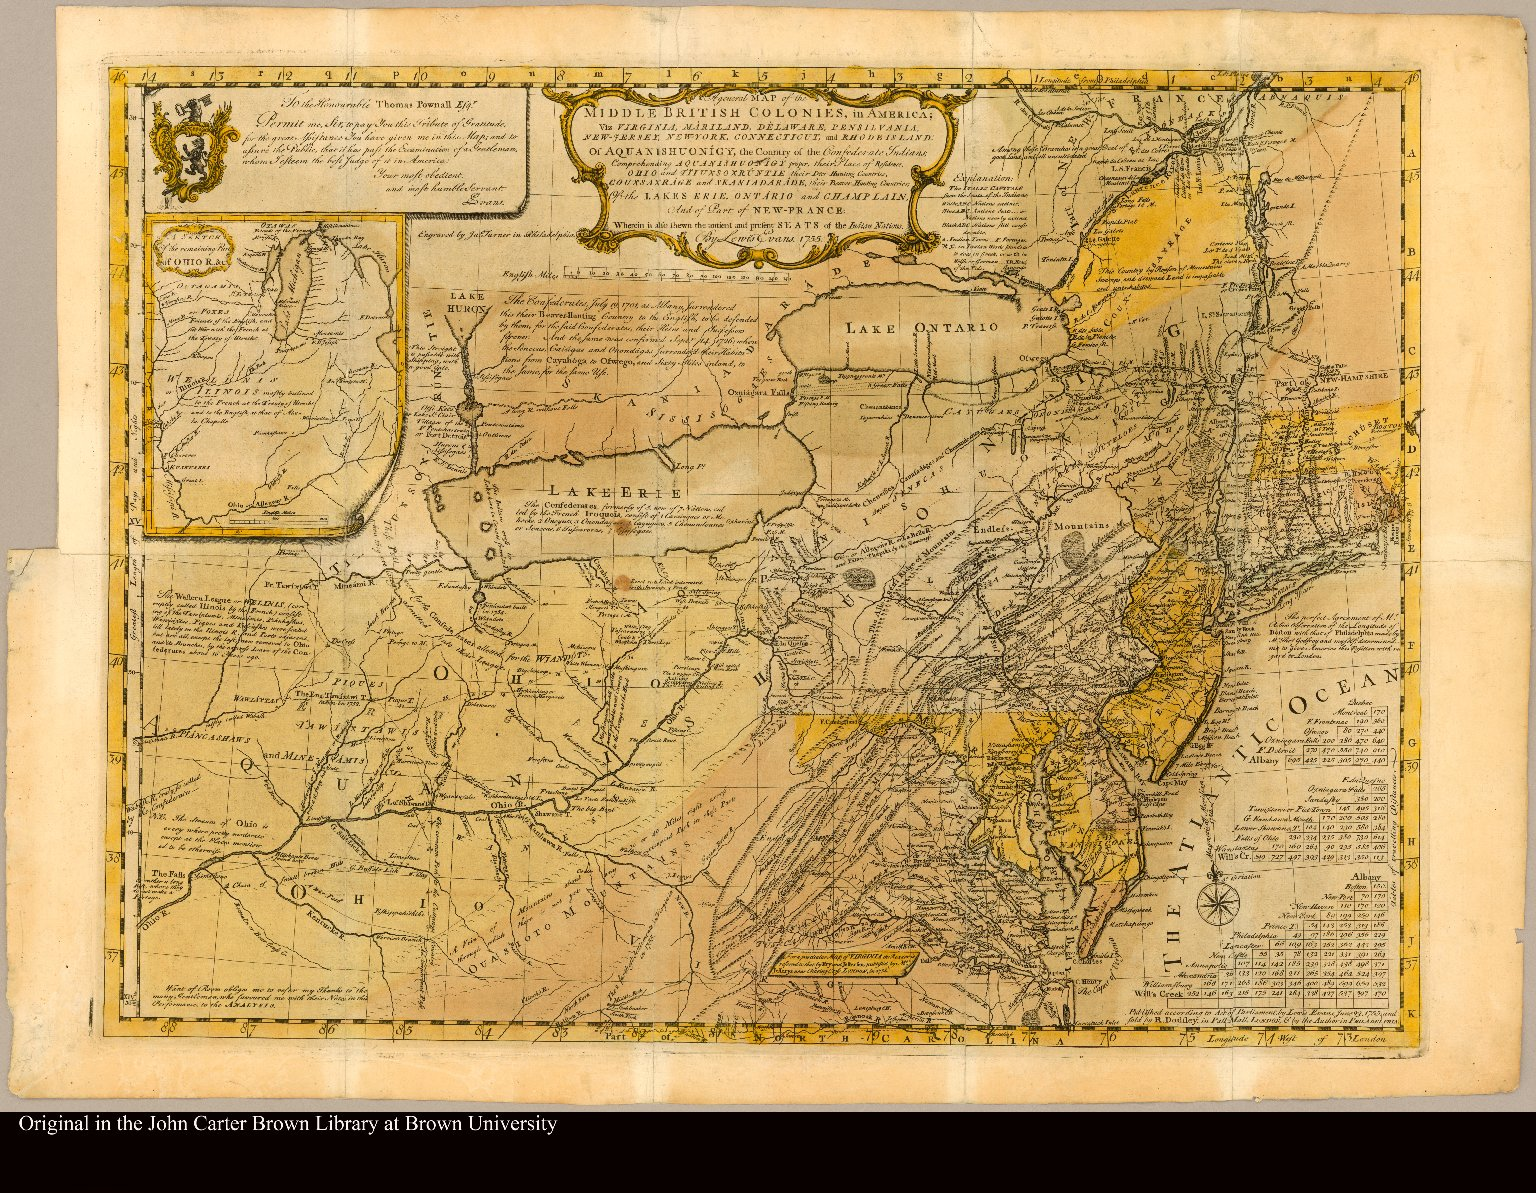 A general map of the middle British colonies, in America; viz. Virginia, Mariland, Delaware, Pensilvania, New-Jersey, New-York, Connecticut, and Rhode Island: Of Aquanishuonîgy, the country of the Confederate Indians; comprehending Aquanishuonîgy proper, their place of residence, Ohio and Tïiuxsoxrúntie, their deer-hunting countries, Couxsaxráge and Skaniadarâde, their beaver-hunting countries; of the Lakes Erie, Ontário, and Champlain, and part of New-France: Wherein is also shewn the antient and present seats of the Indian nations by Lewis Evans. 1755